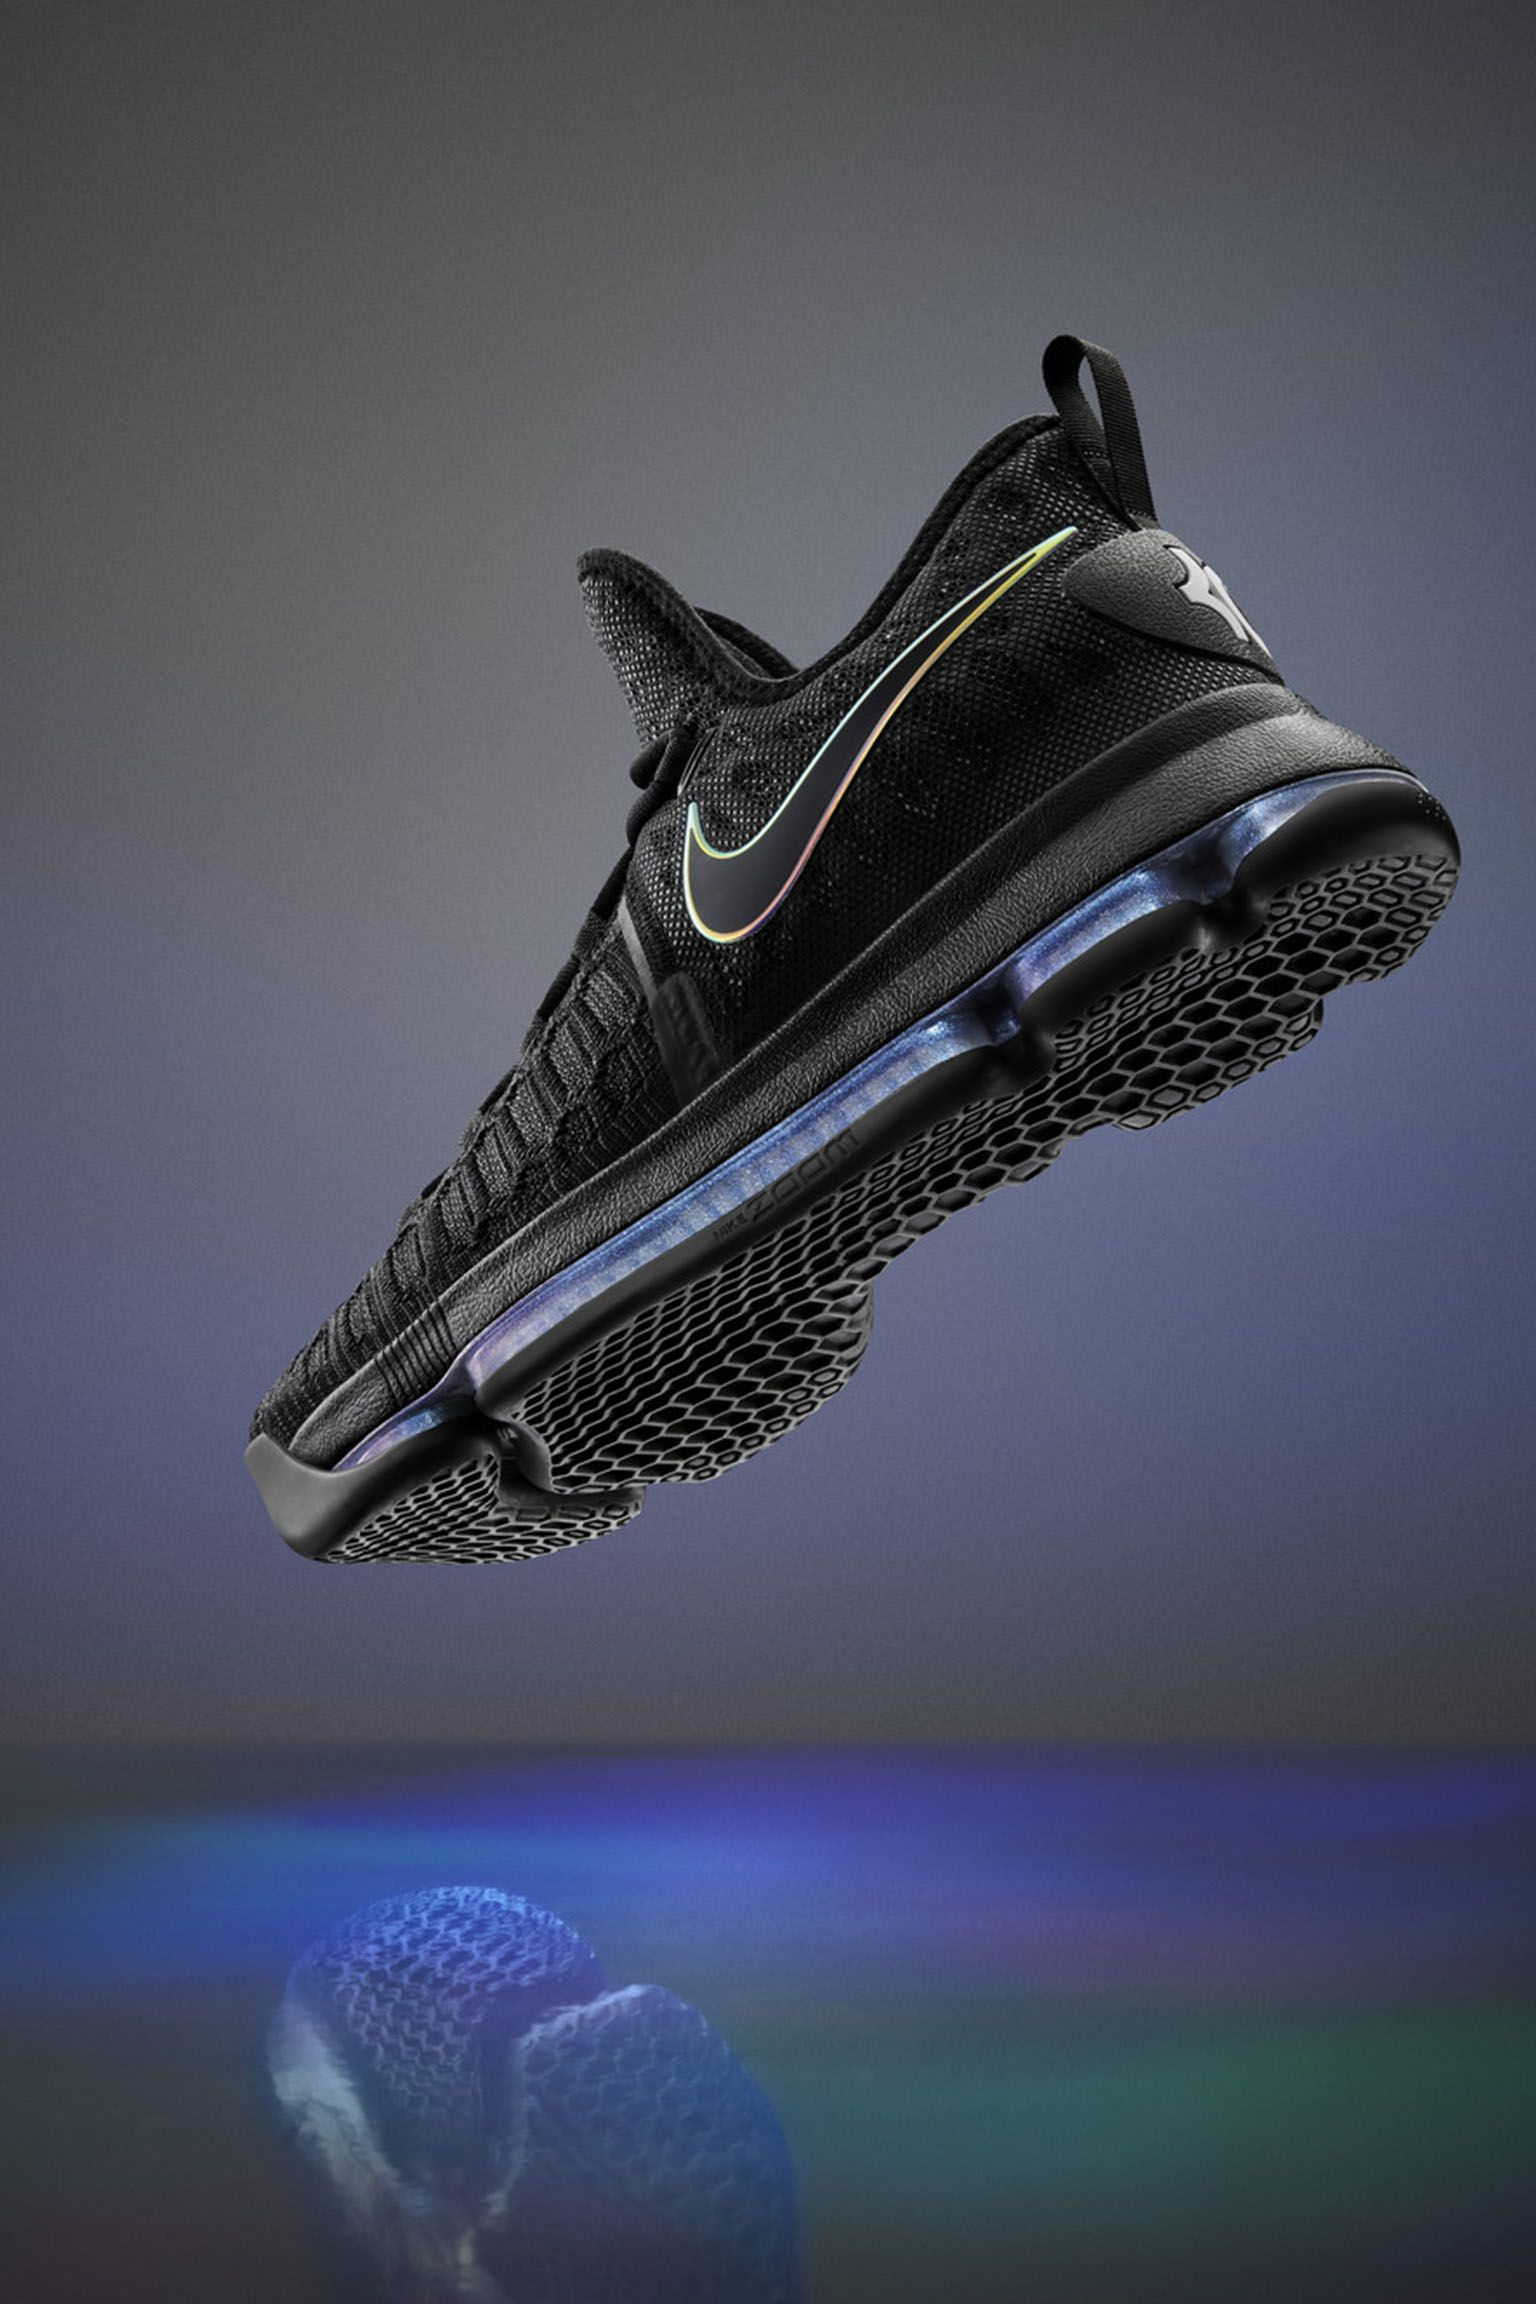 Nike Innovation 2016: The Future of Sport